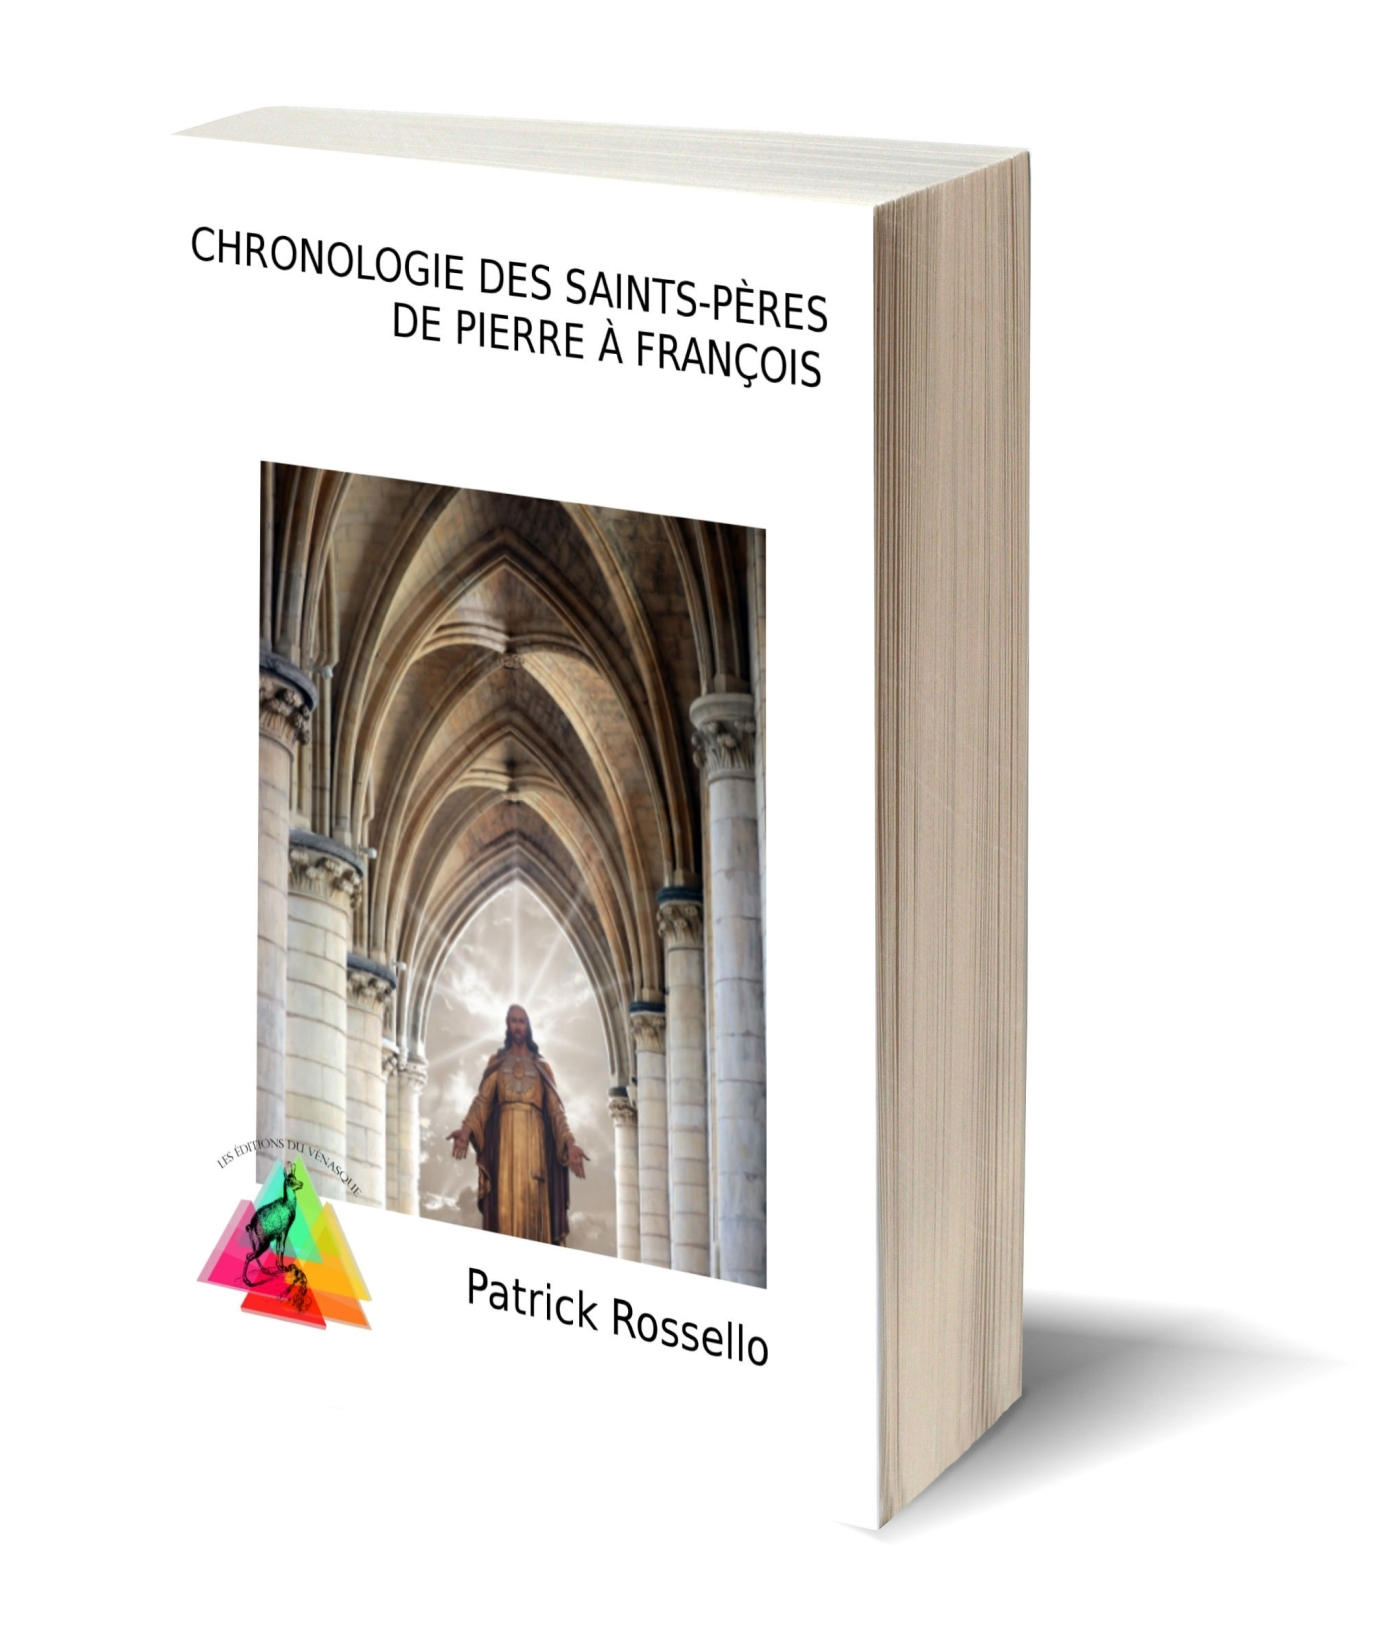 CHRONOLOGIE DES SAINTS-PERES